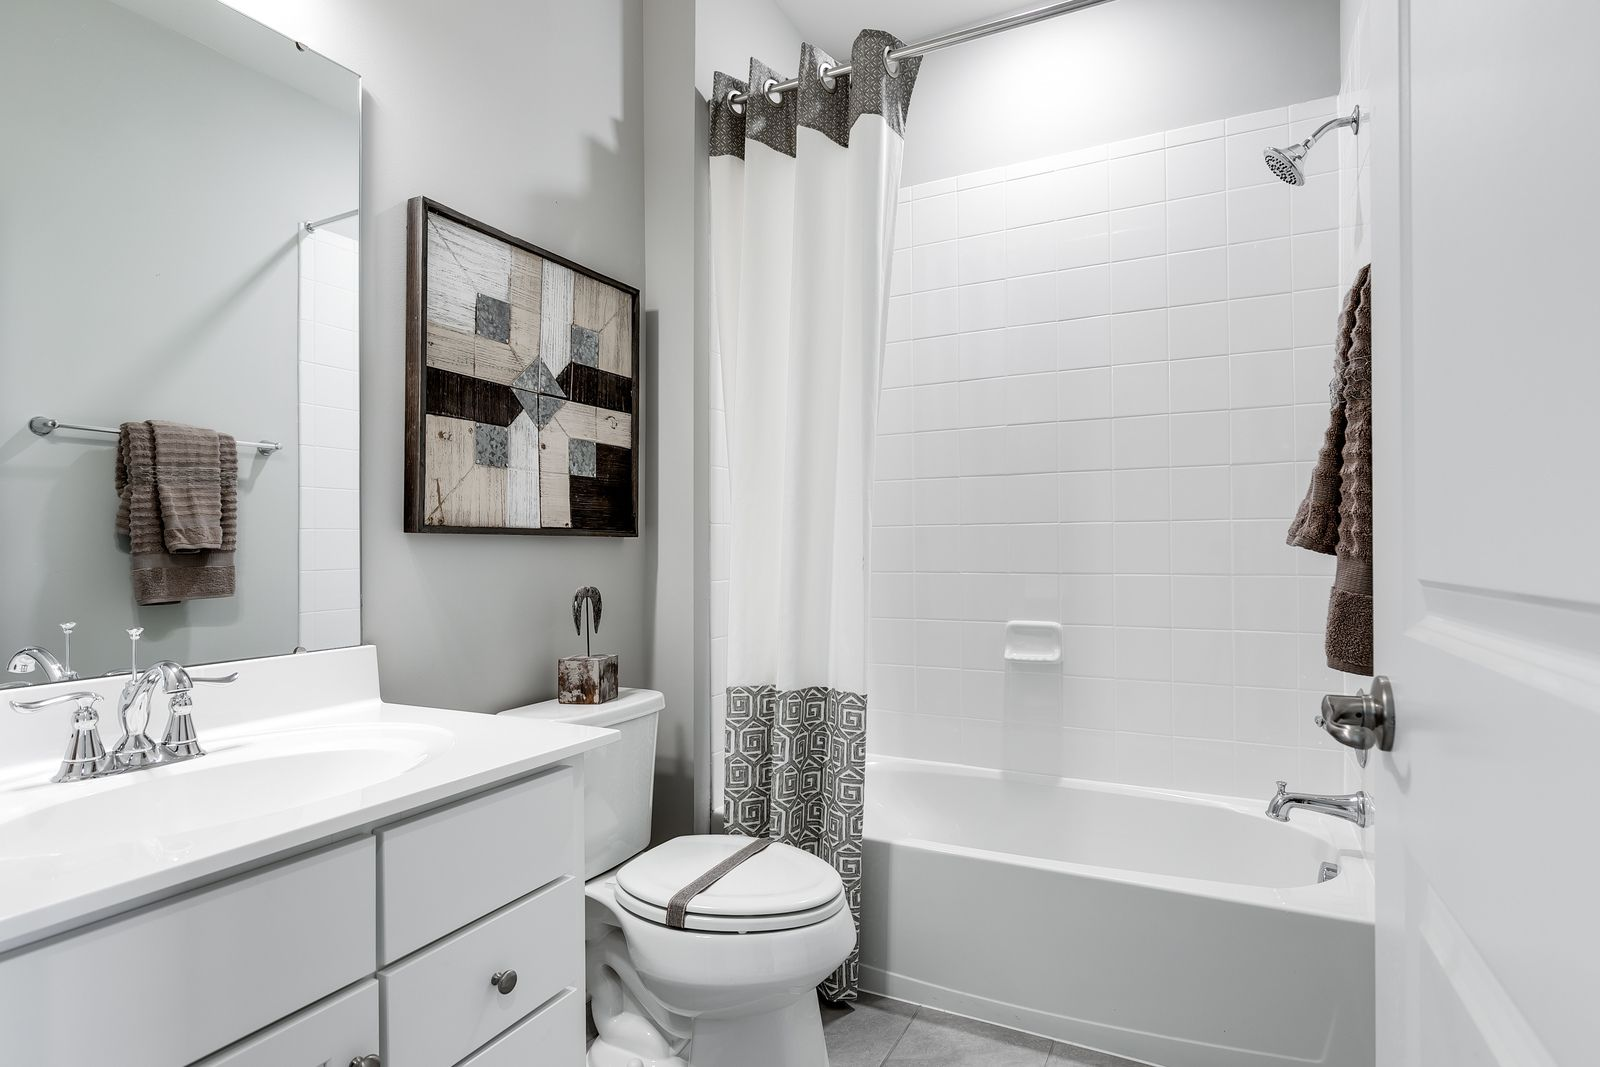 Bathroom featured in the Strauss Attic By Ryan Homes in Baltimore, MD